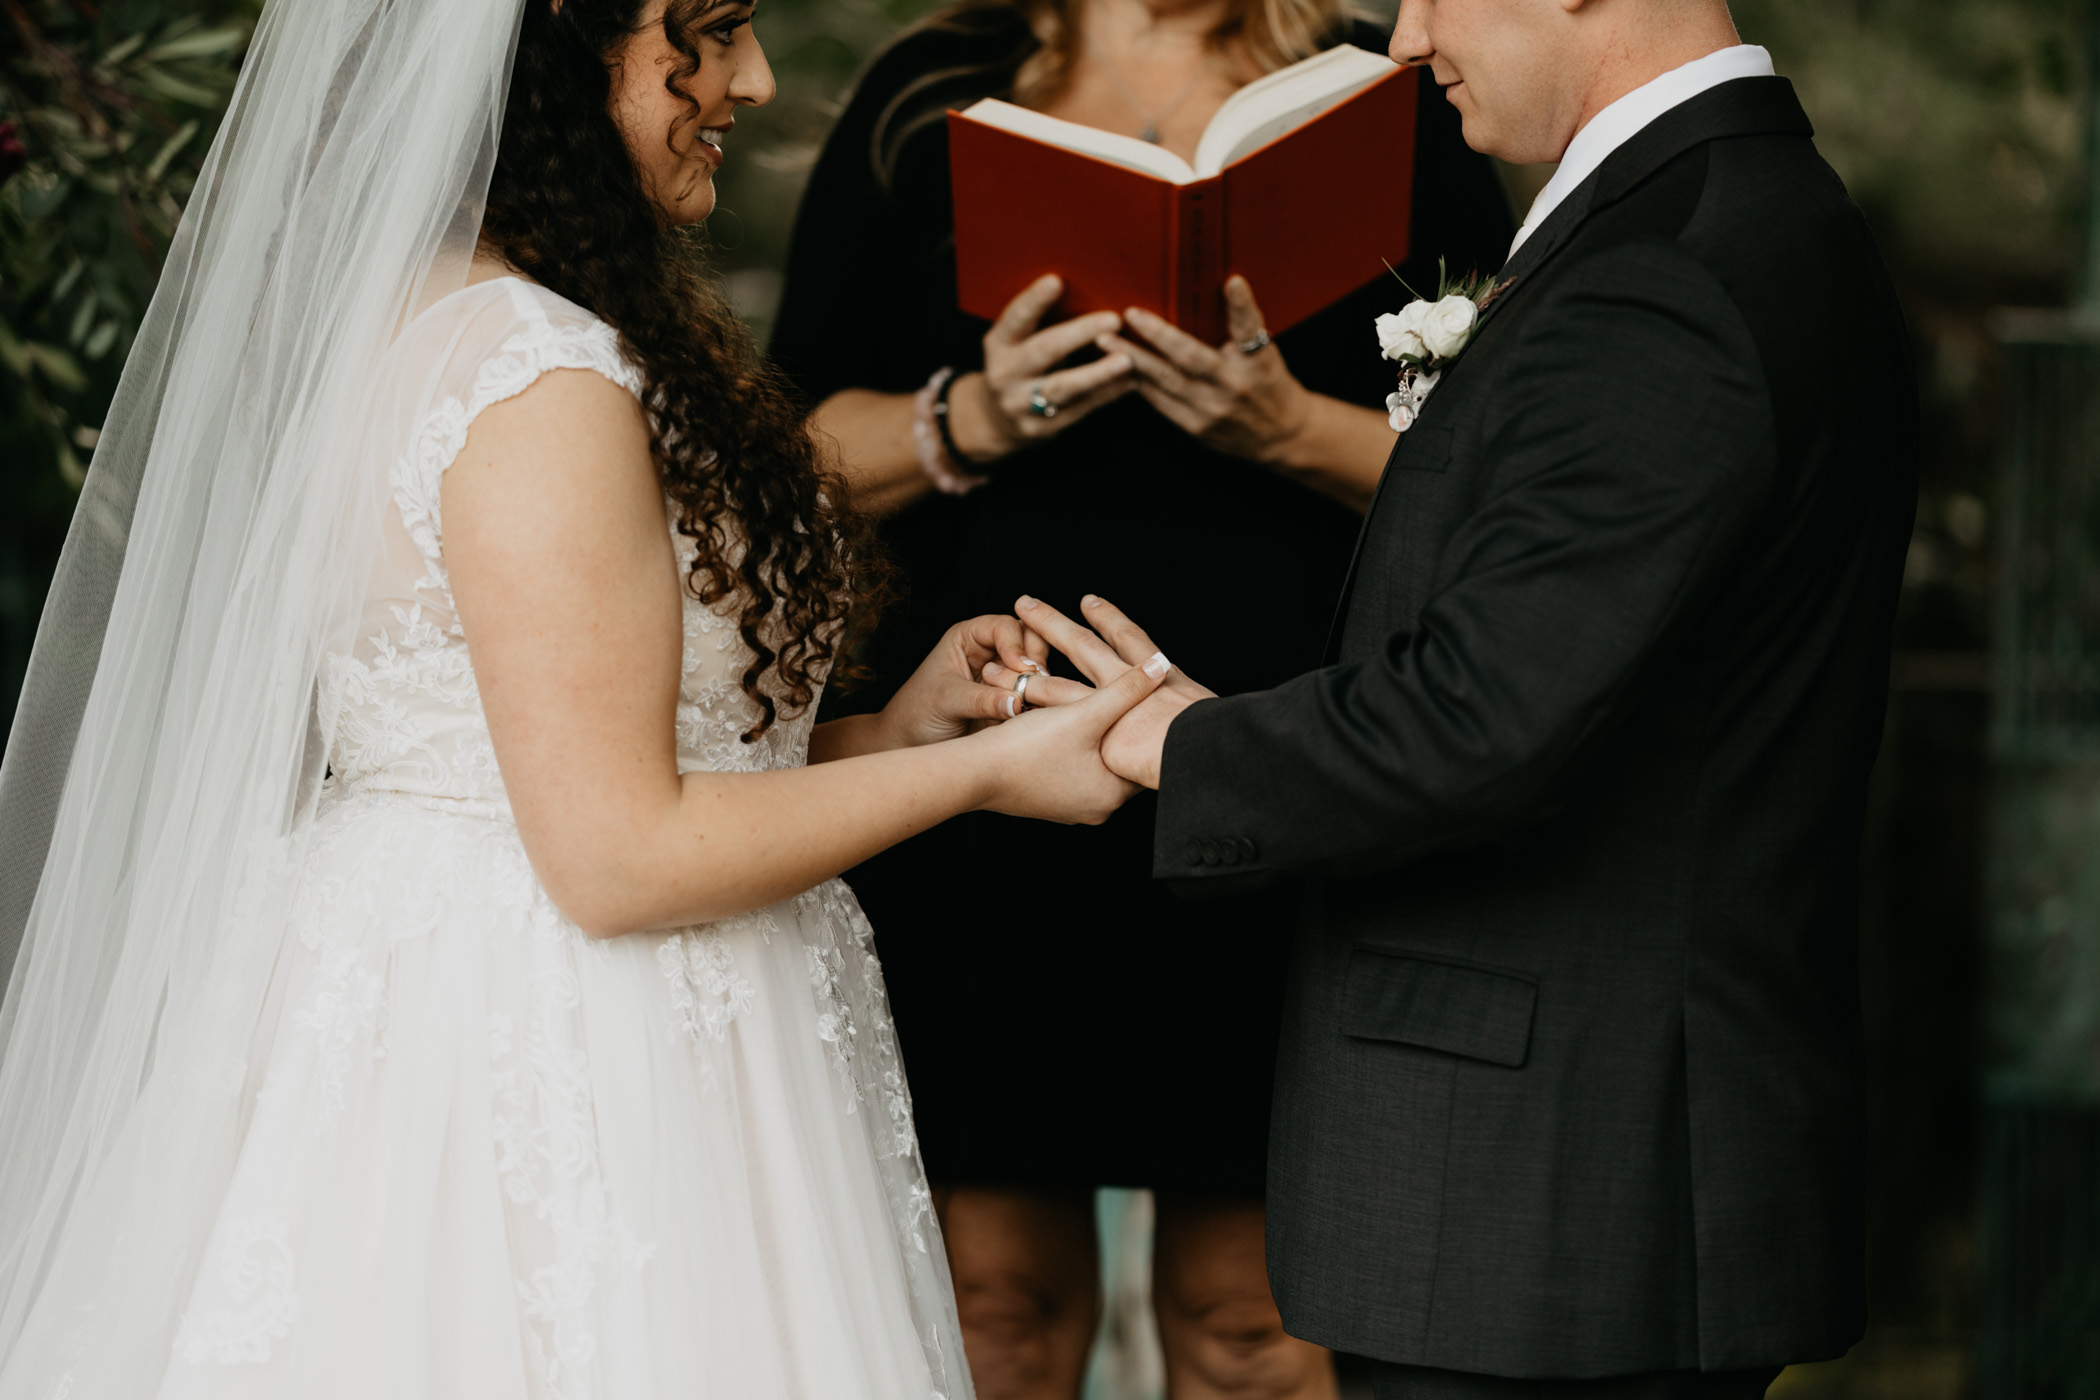 Bride and groom exchanging rings at their wedding ceremony in California